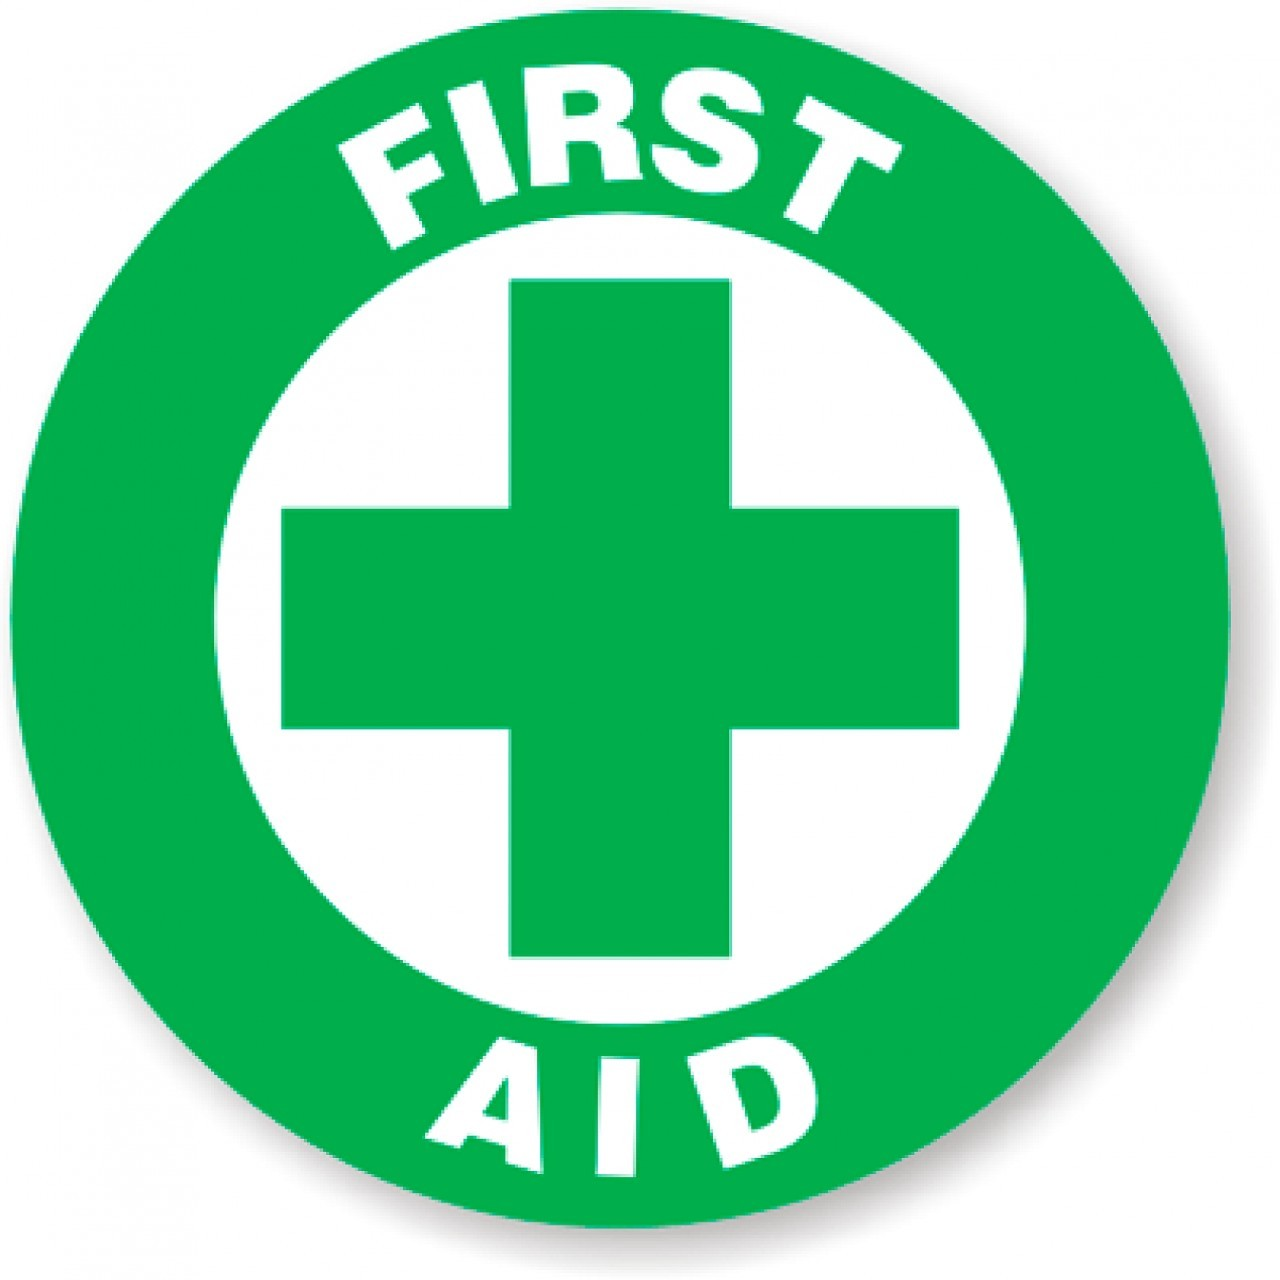 first aid logo design - photo #22